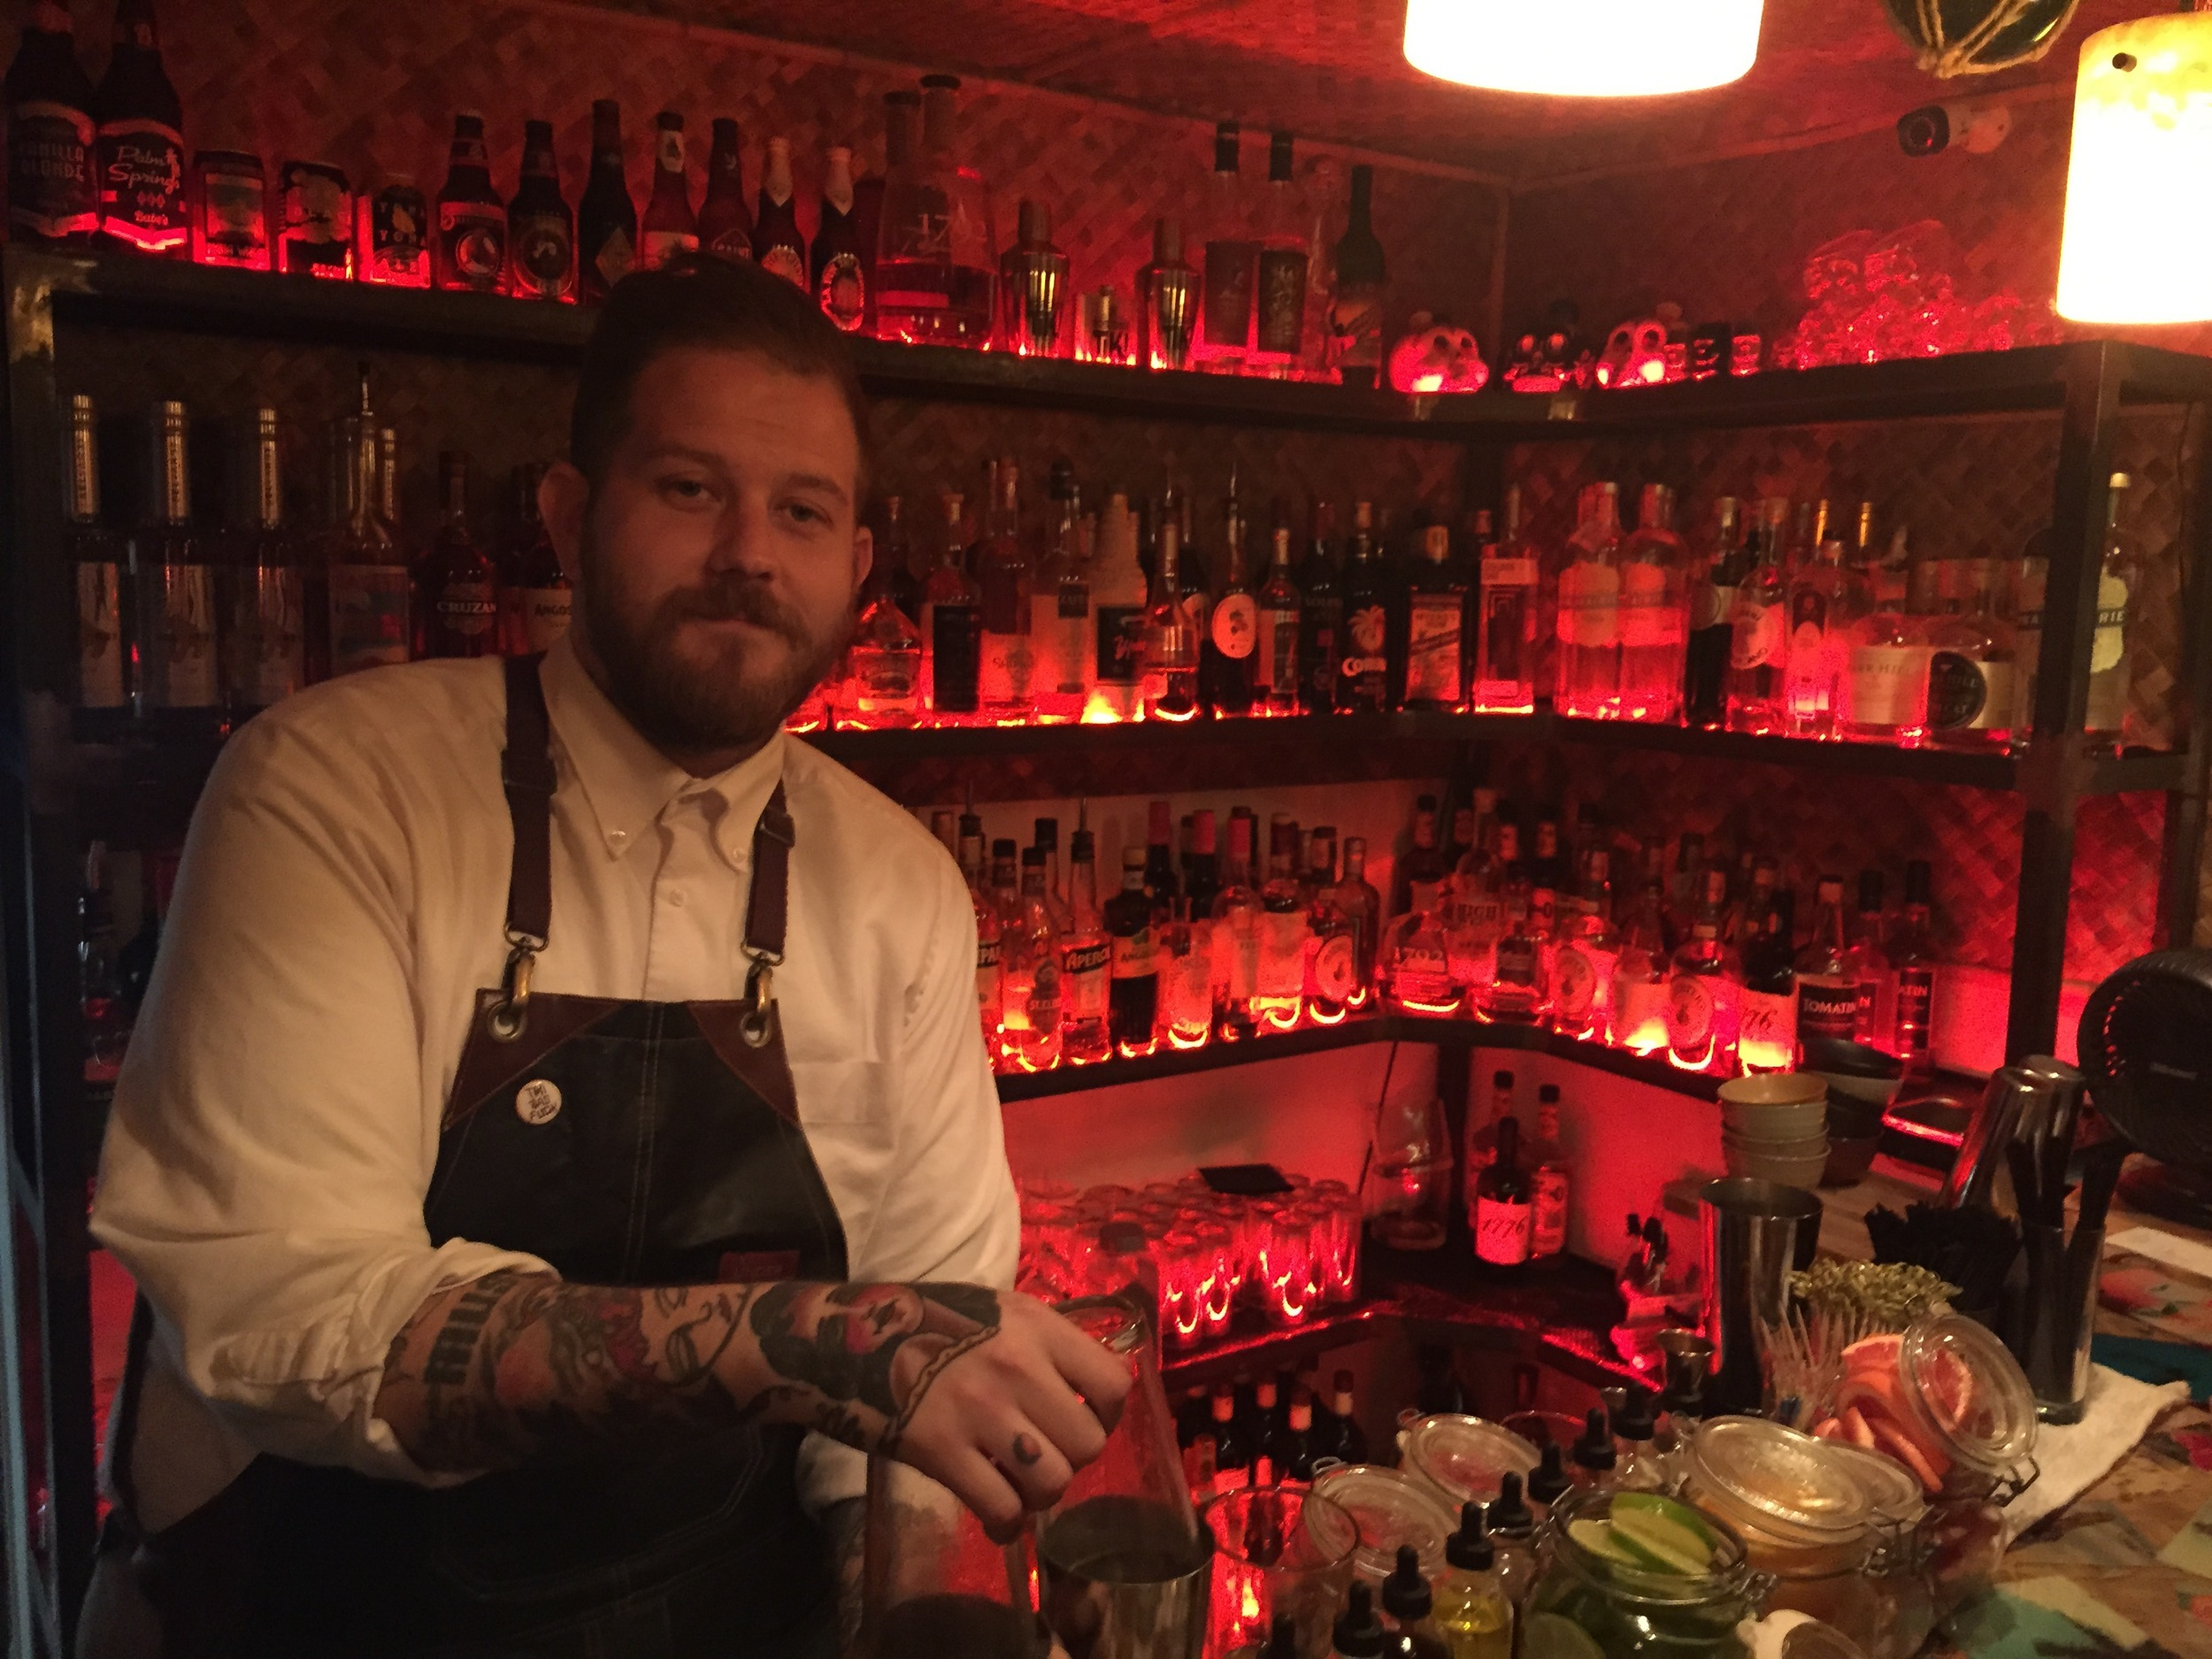 Head bartender Chad Austin prepares the next round of cocktails at Bootlegger Tiki